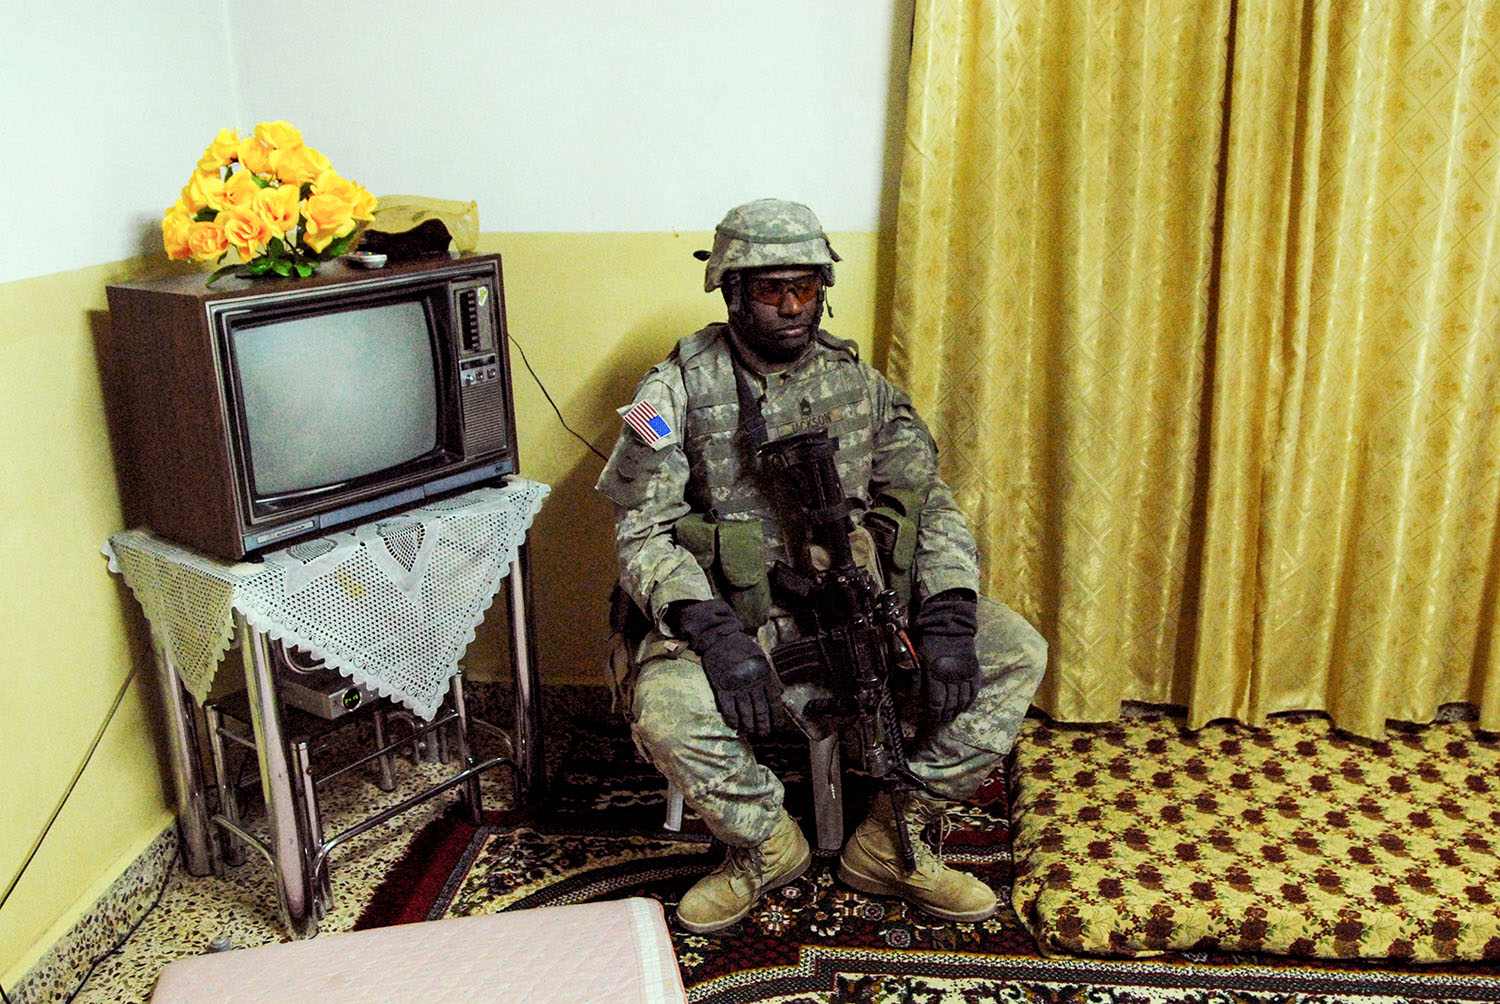 Correct CaptionRawah, IraqMarch, 2006 A weary American soldier stands guard as a residential home is searched. Peter van Agtmael/Magnum